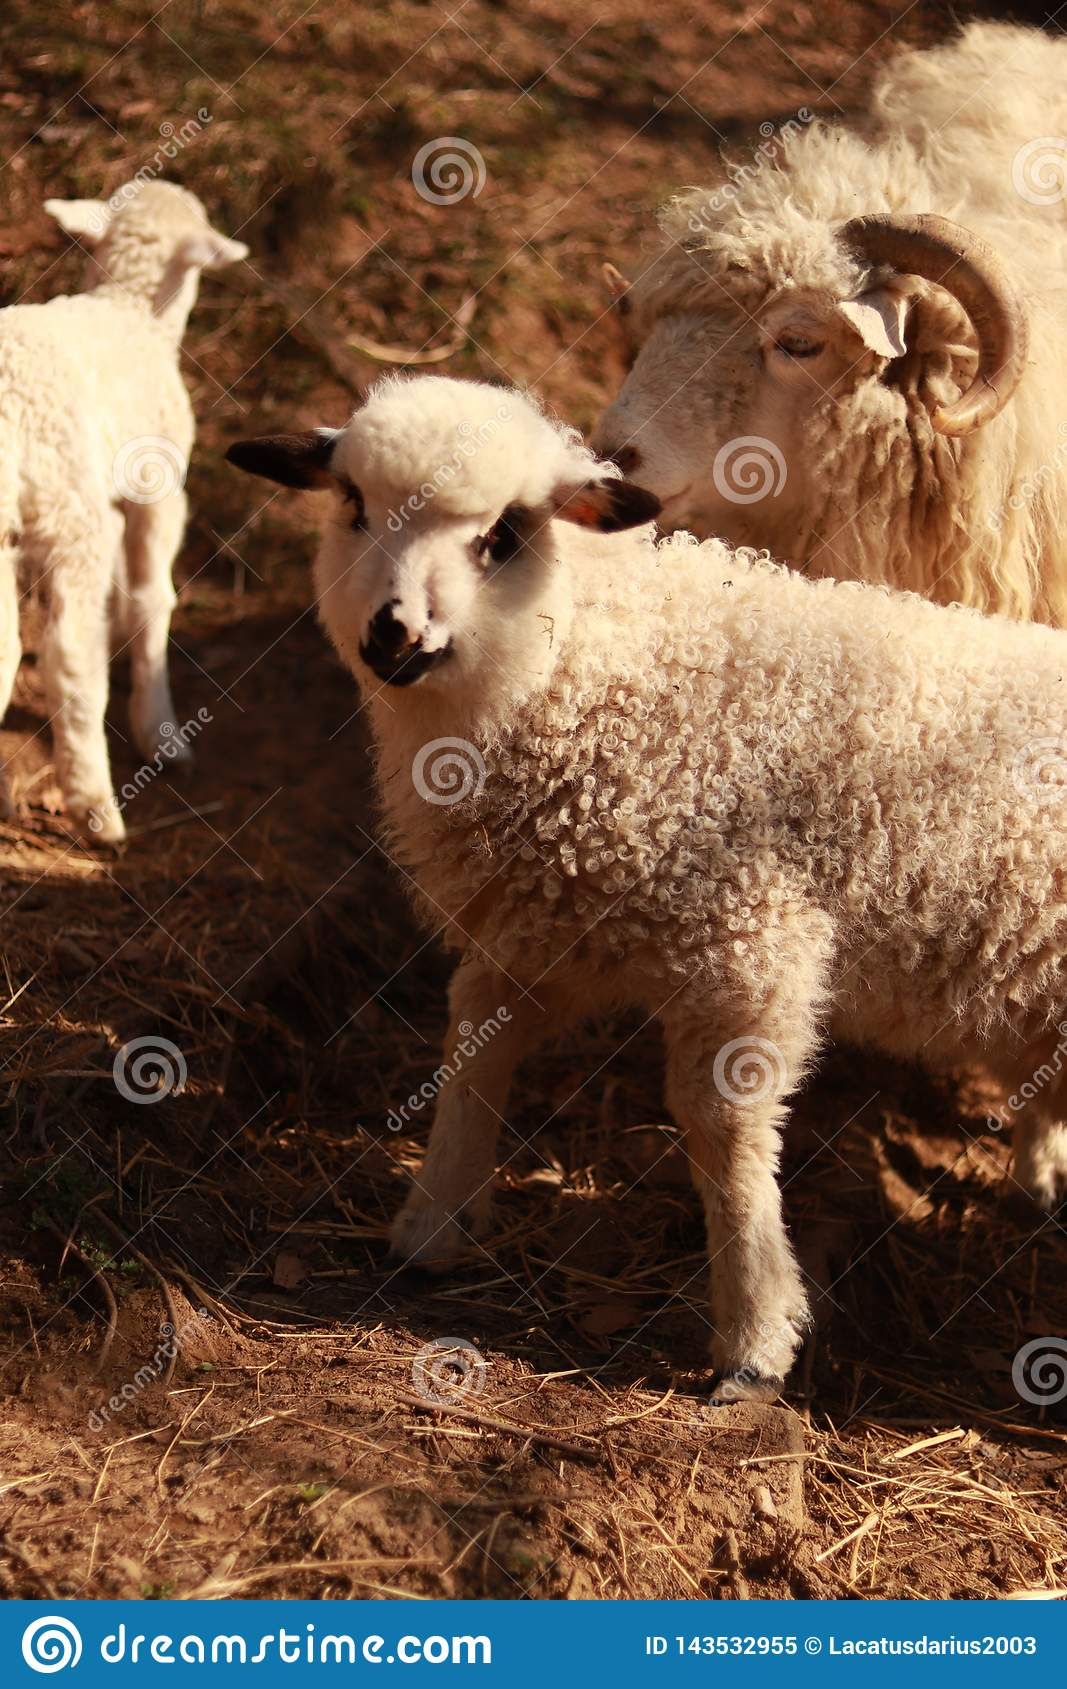 A sheep with a lamb